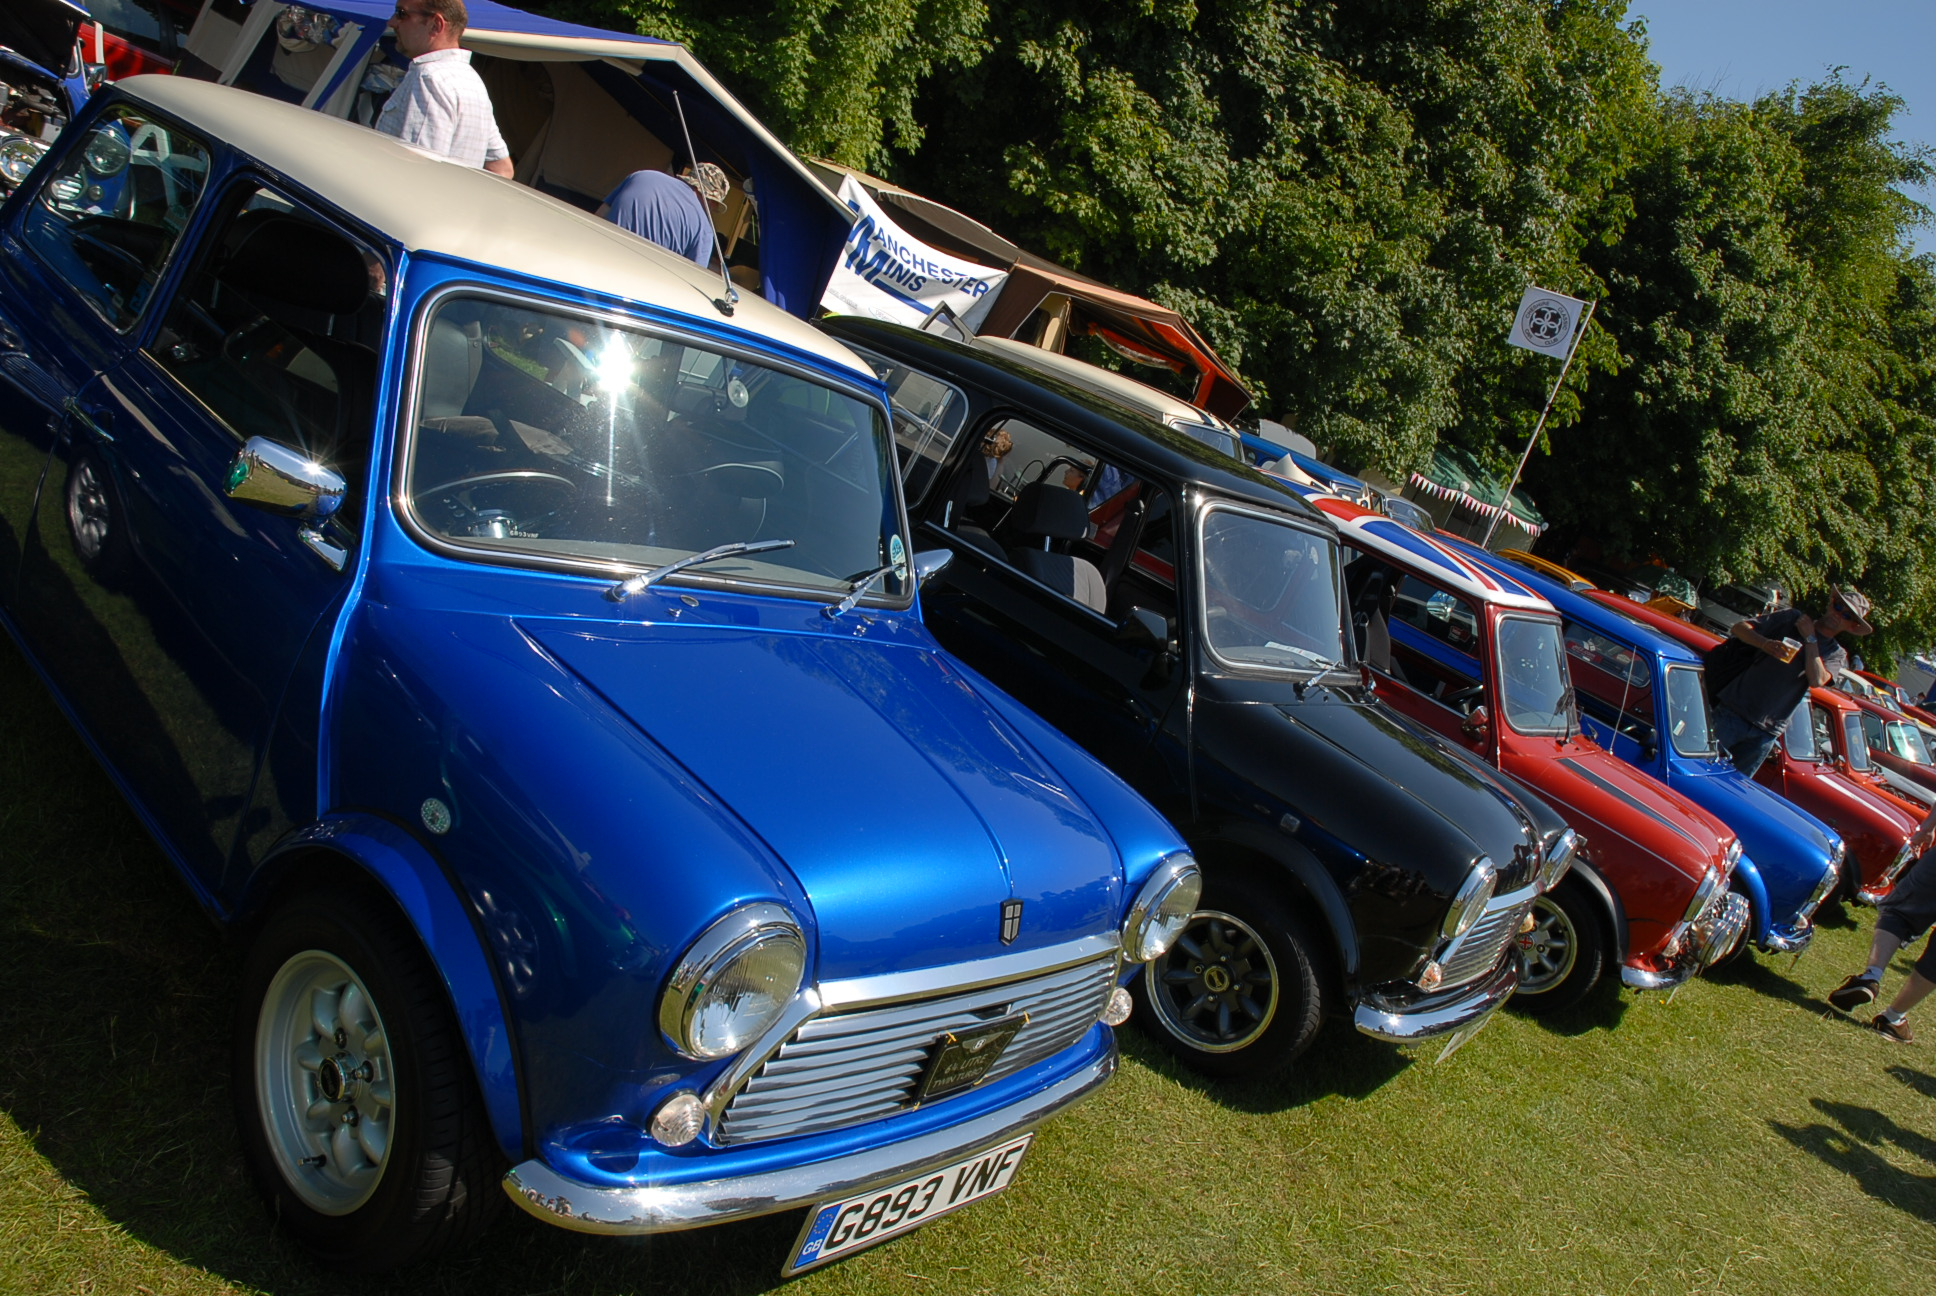 Classic car show Cheshire